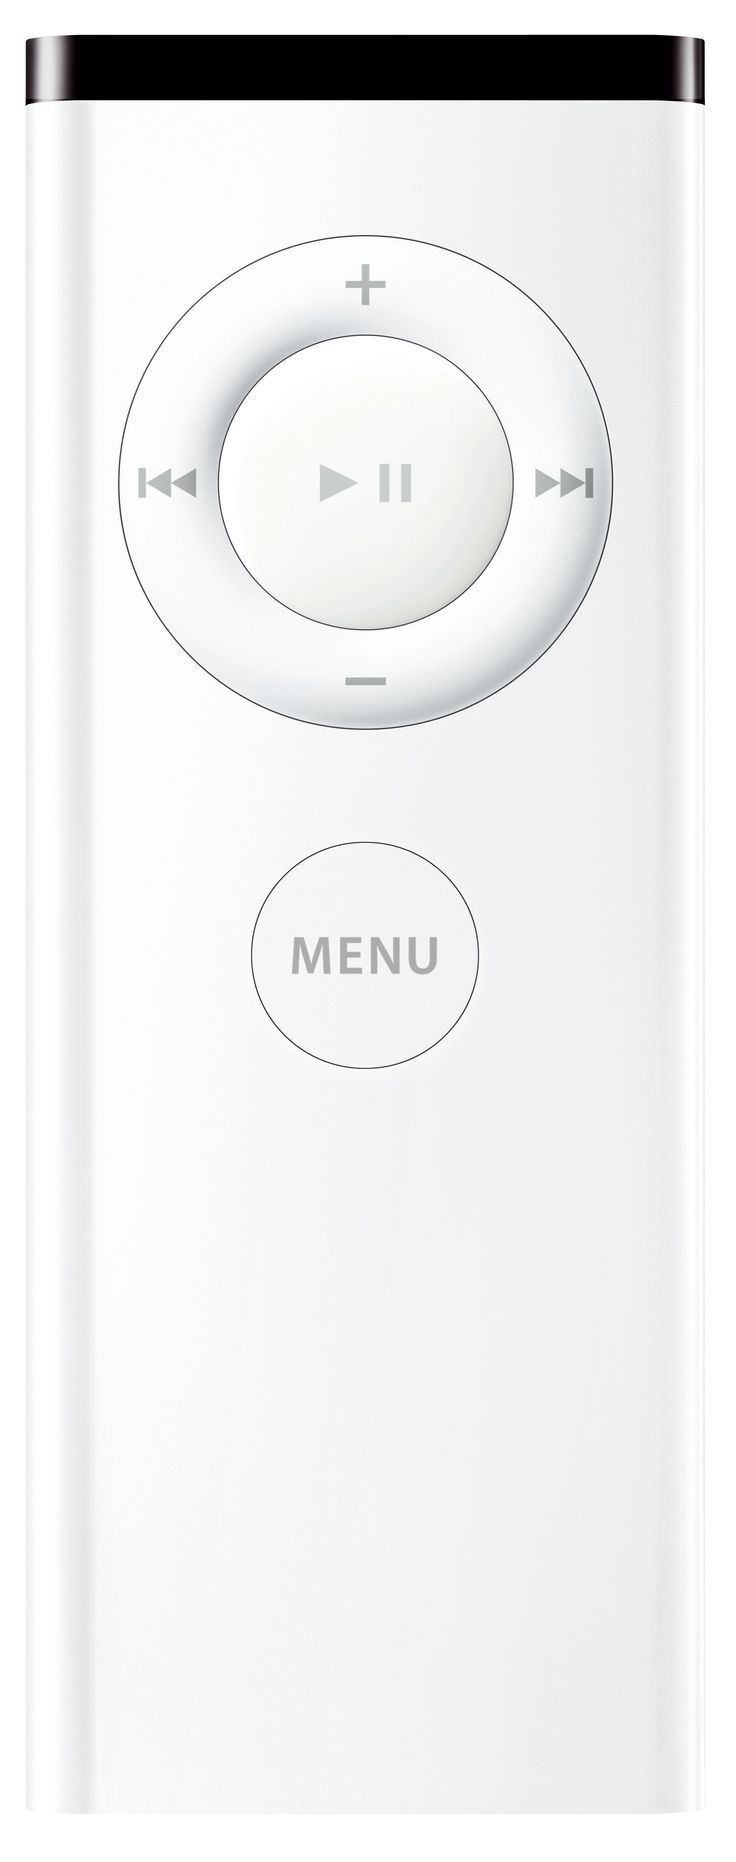 61 Best Images About Remote Controller On Pinterest Xbox One Apple Tv And Wi Fi